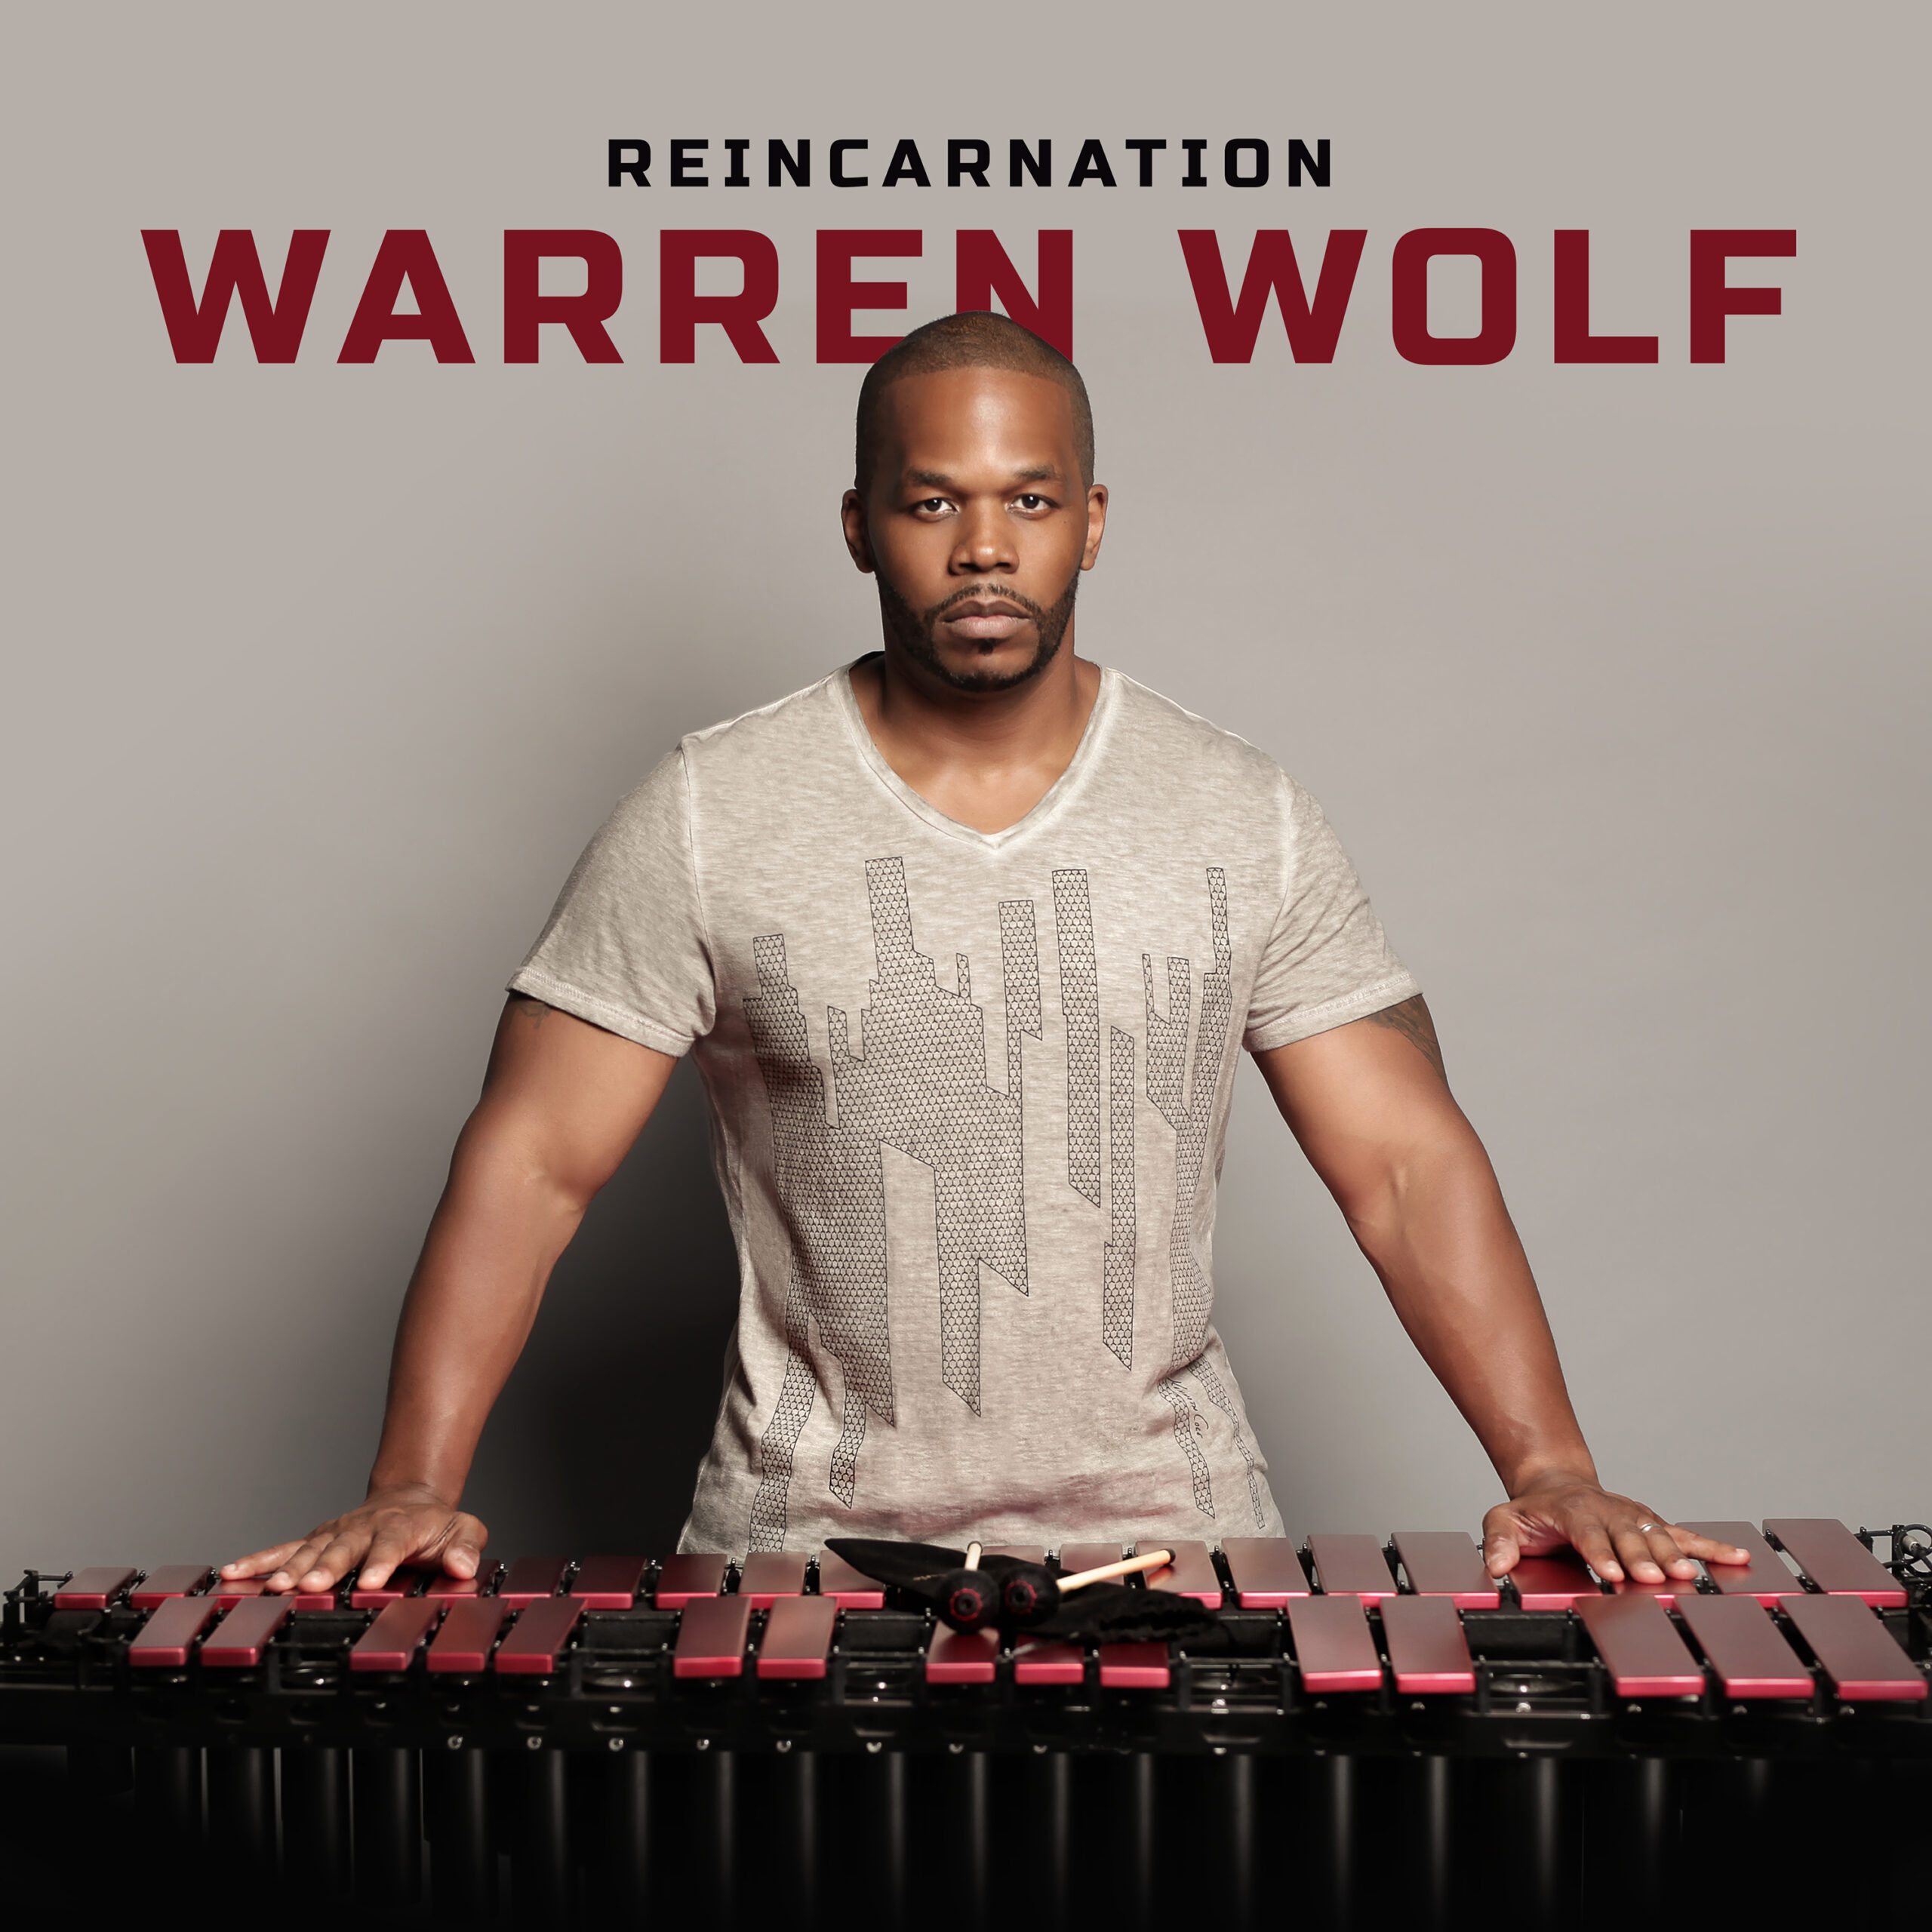 mac_1169_warren_wolf_reincarnation_cover_3000x3000_rgb